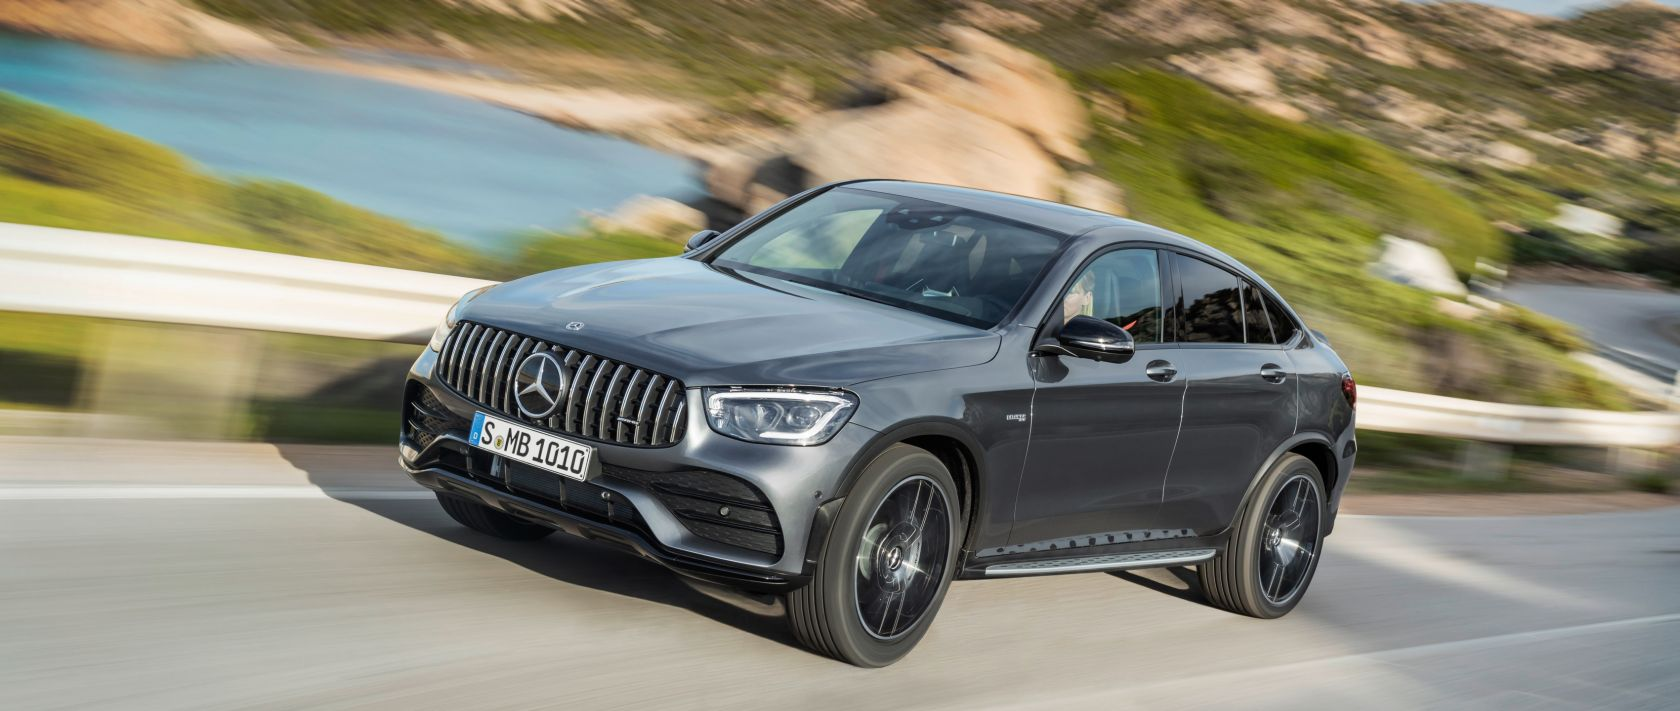 Fast scene: the 2019 Mercedes-AMG GLC 43 4MATIC Coupé (C 253) in selenite grey on a coastal road.